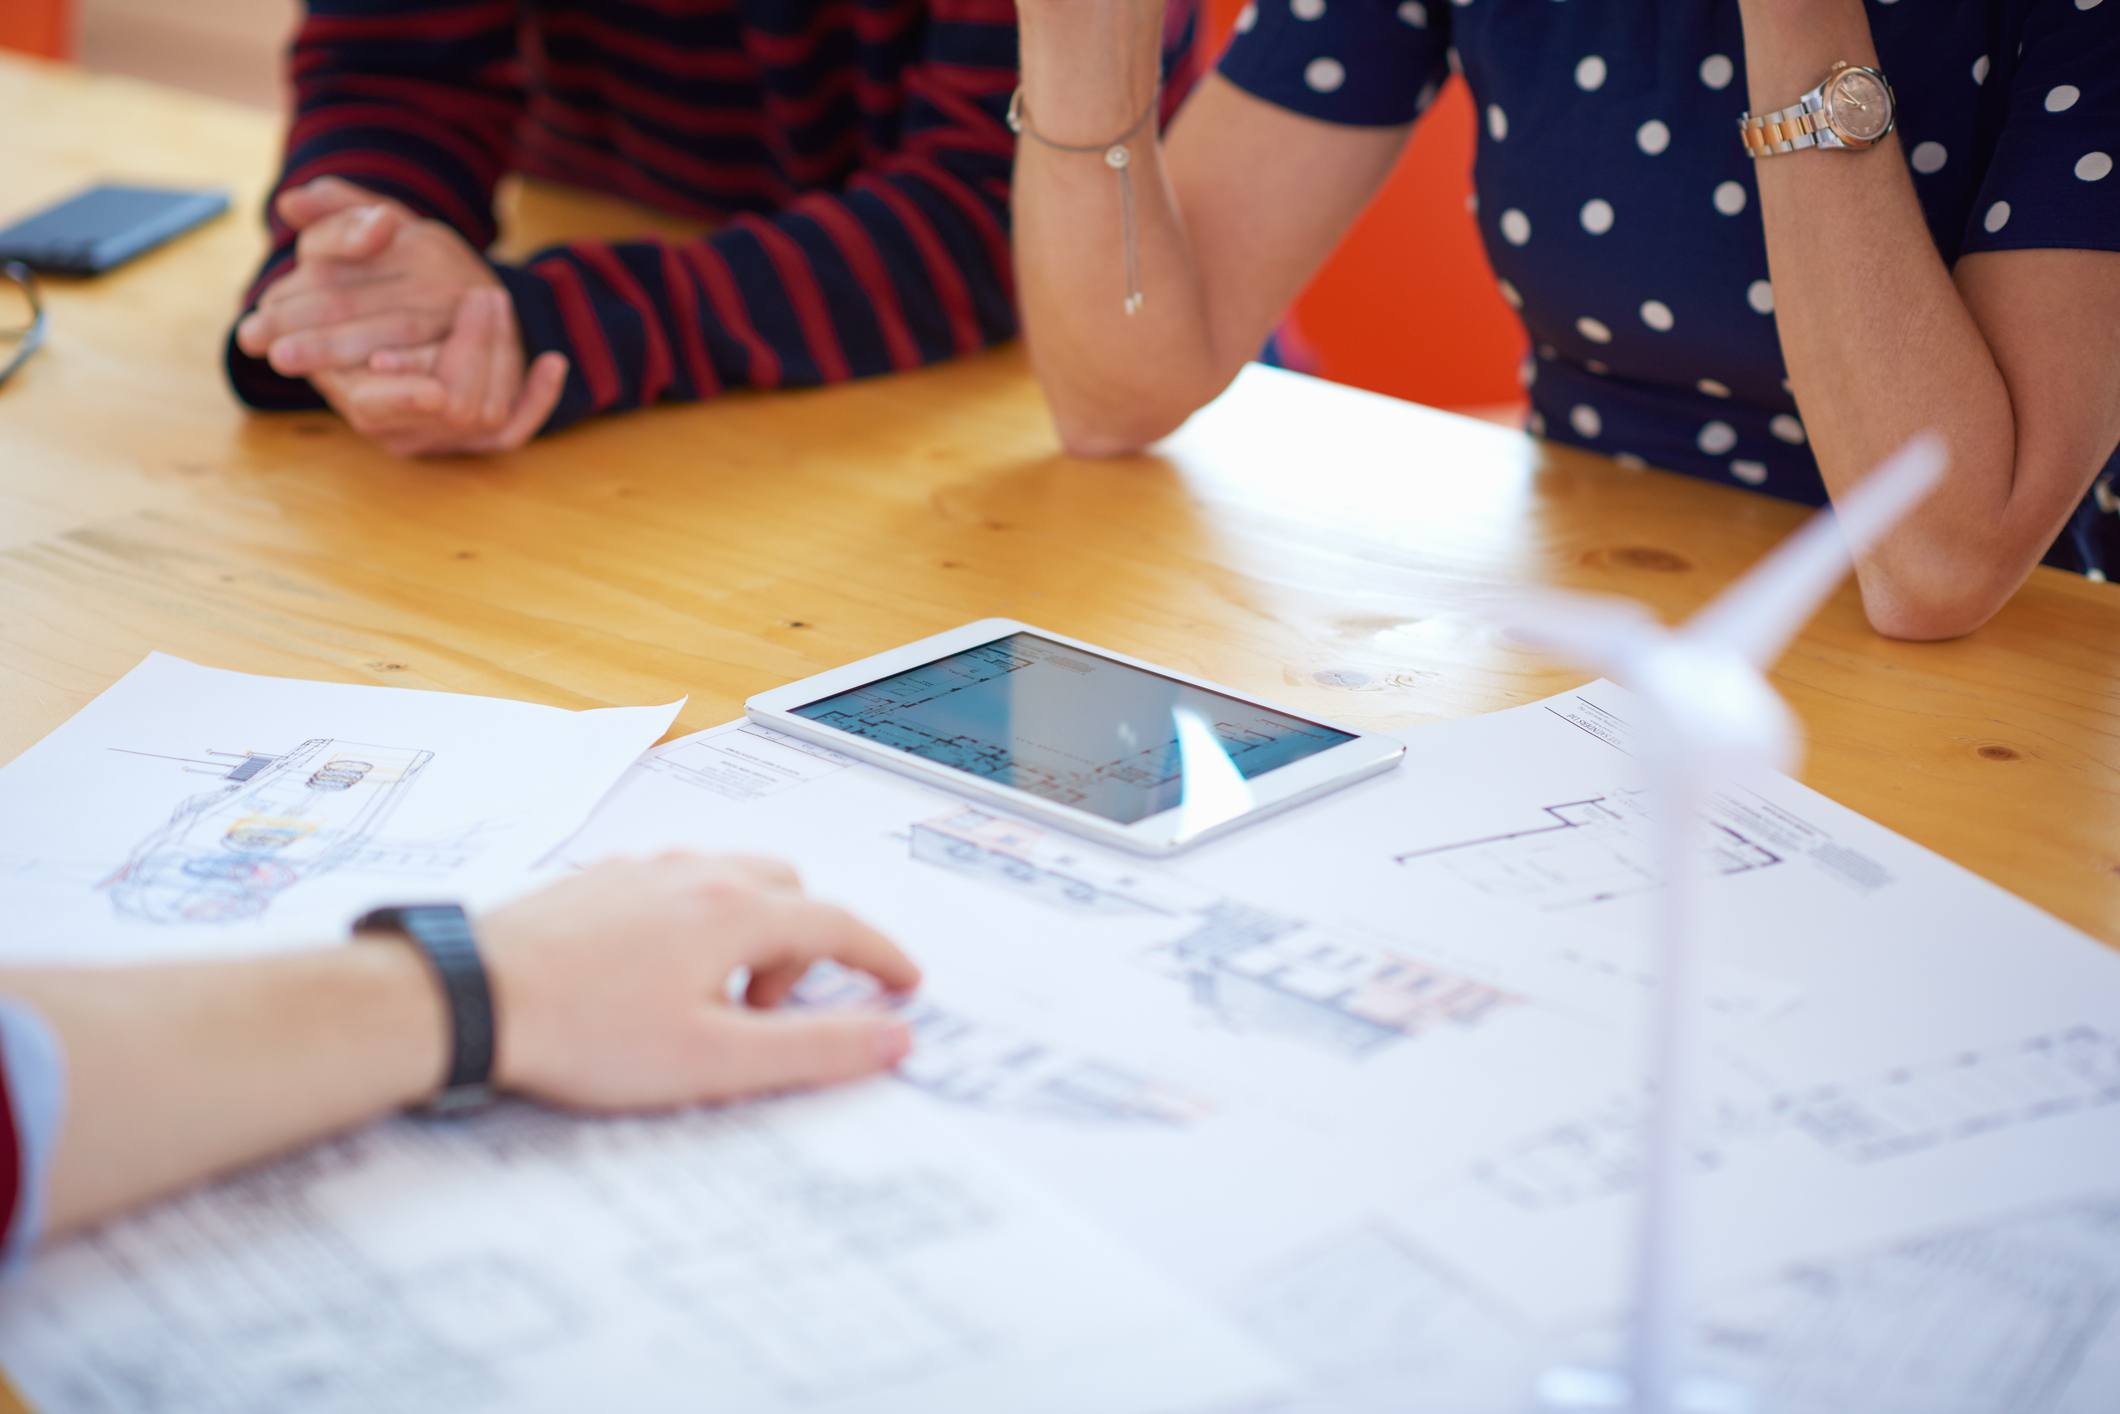 People around table looking at blueprints